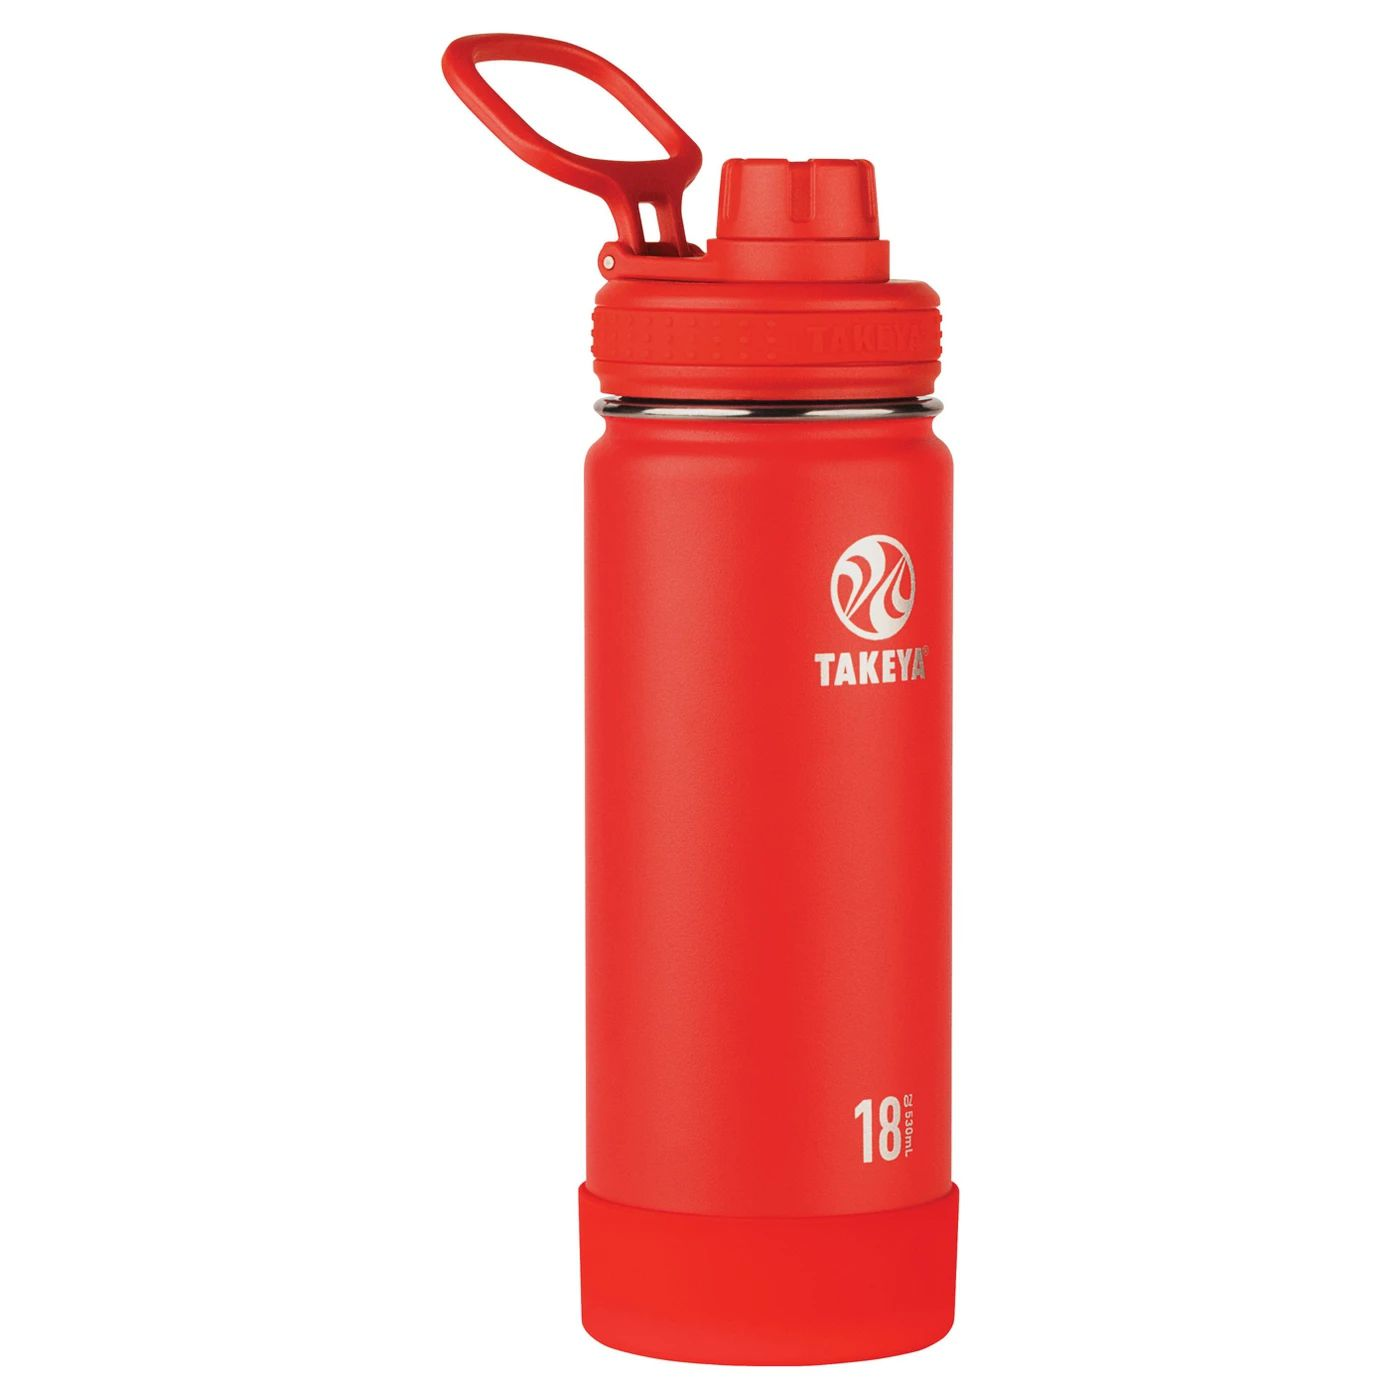 24 Hours Cold 12 Hours Hot 11 oz Leak-Proof Sports Flask Sprouts Stainless Steel Vacuum Insulated Kids Water Bottle Reusable Metal Water Bottle